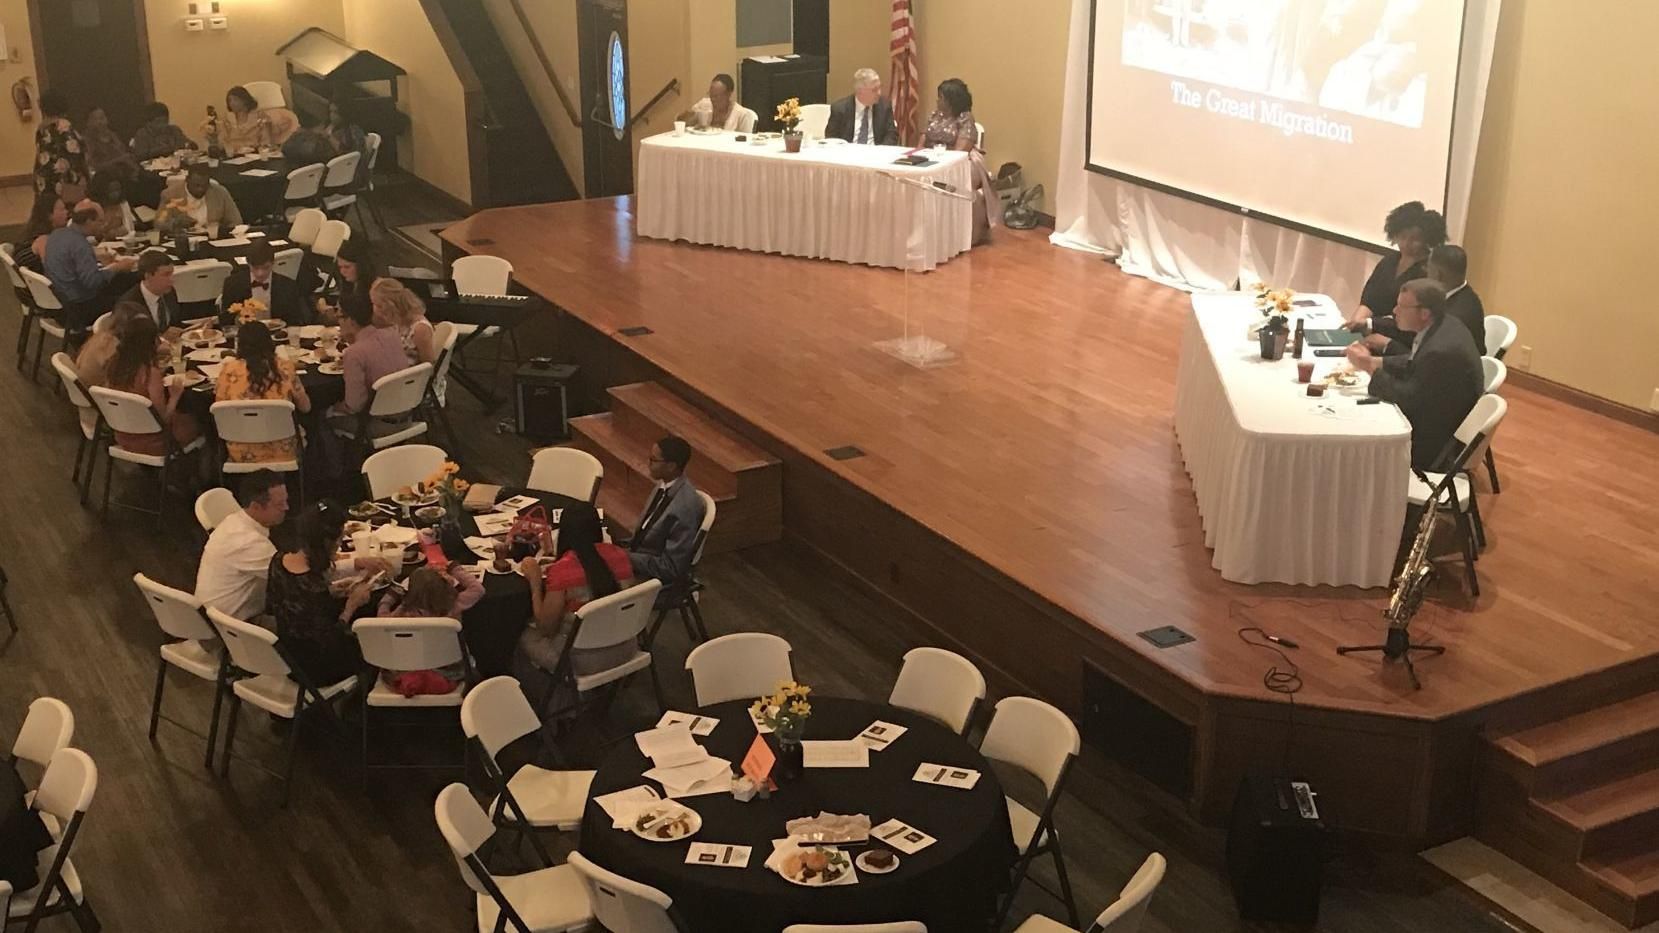 Decatur museum commemorates Juneteenth with 26th annual event